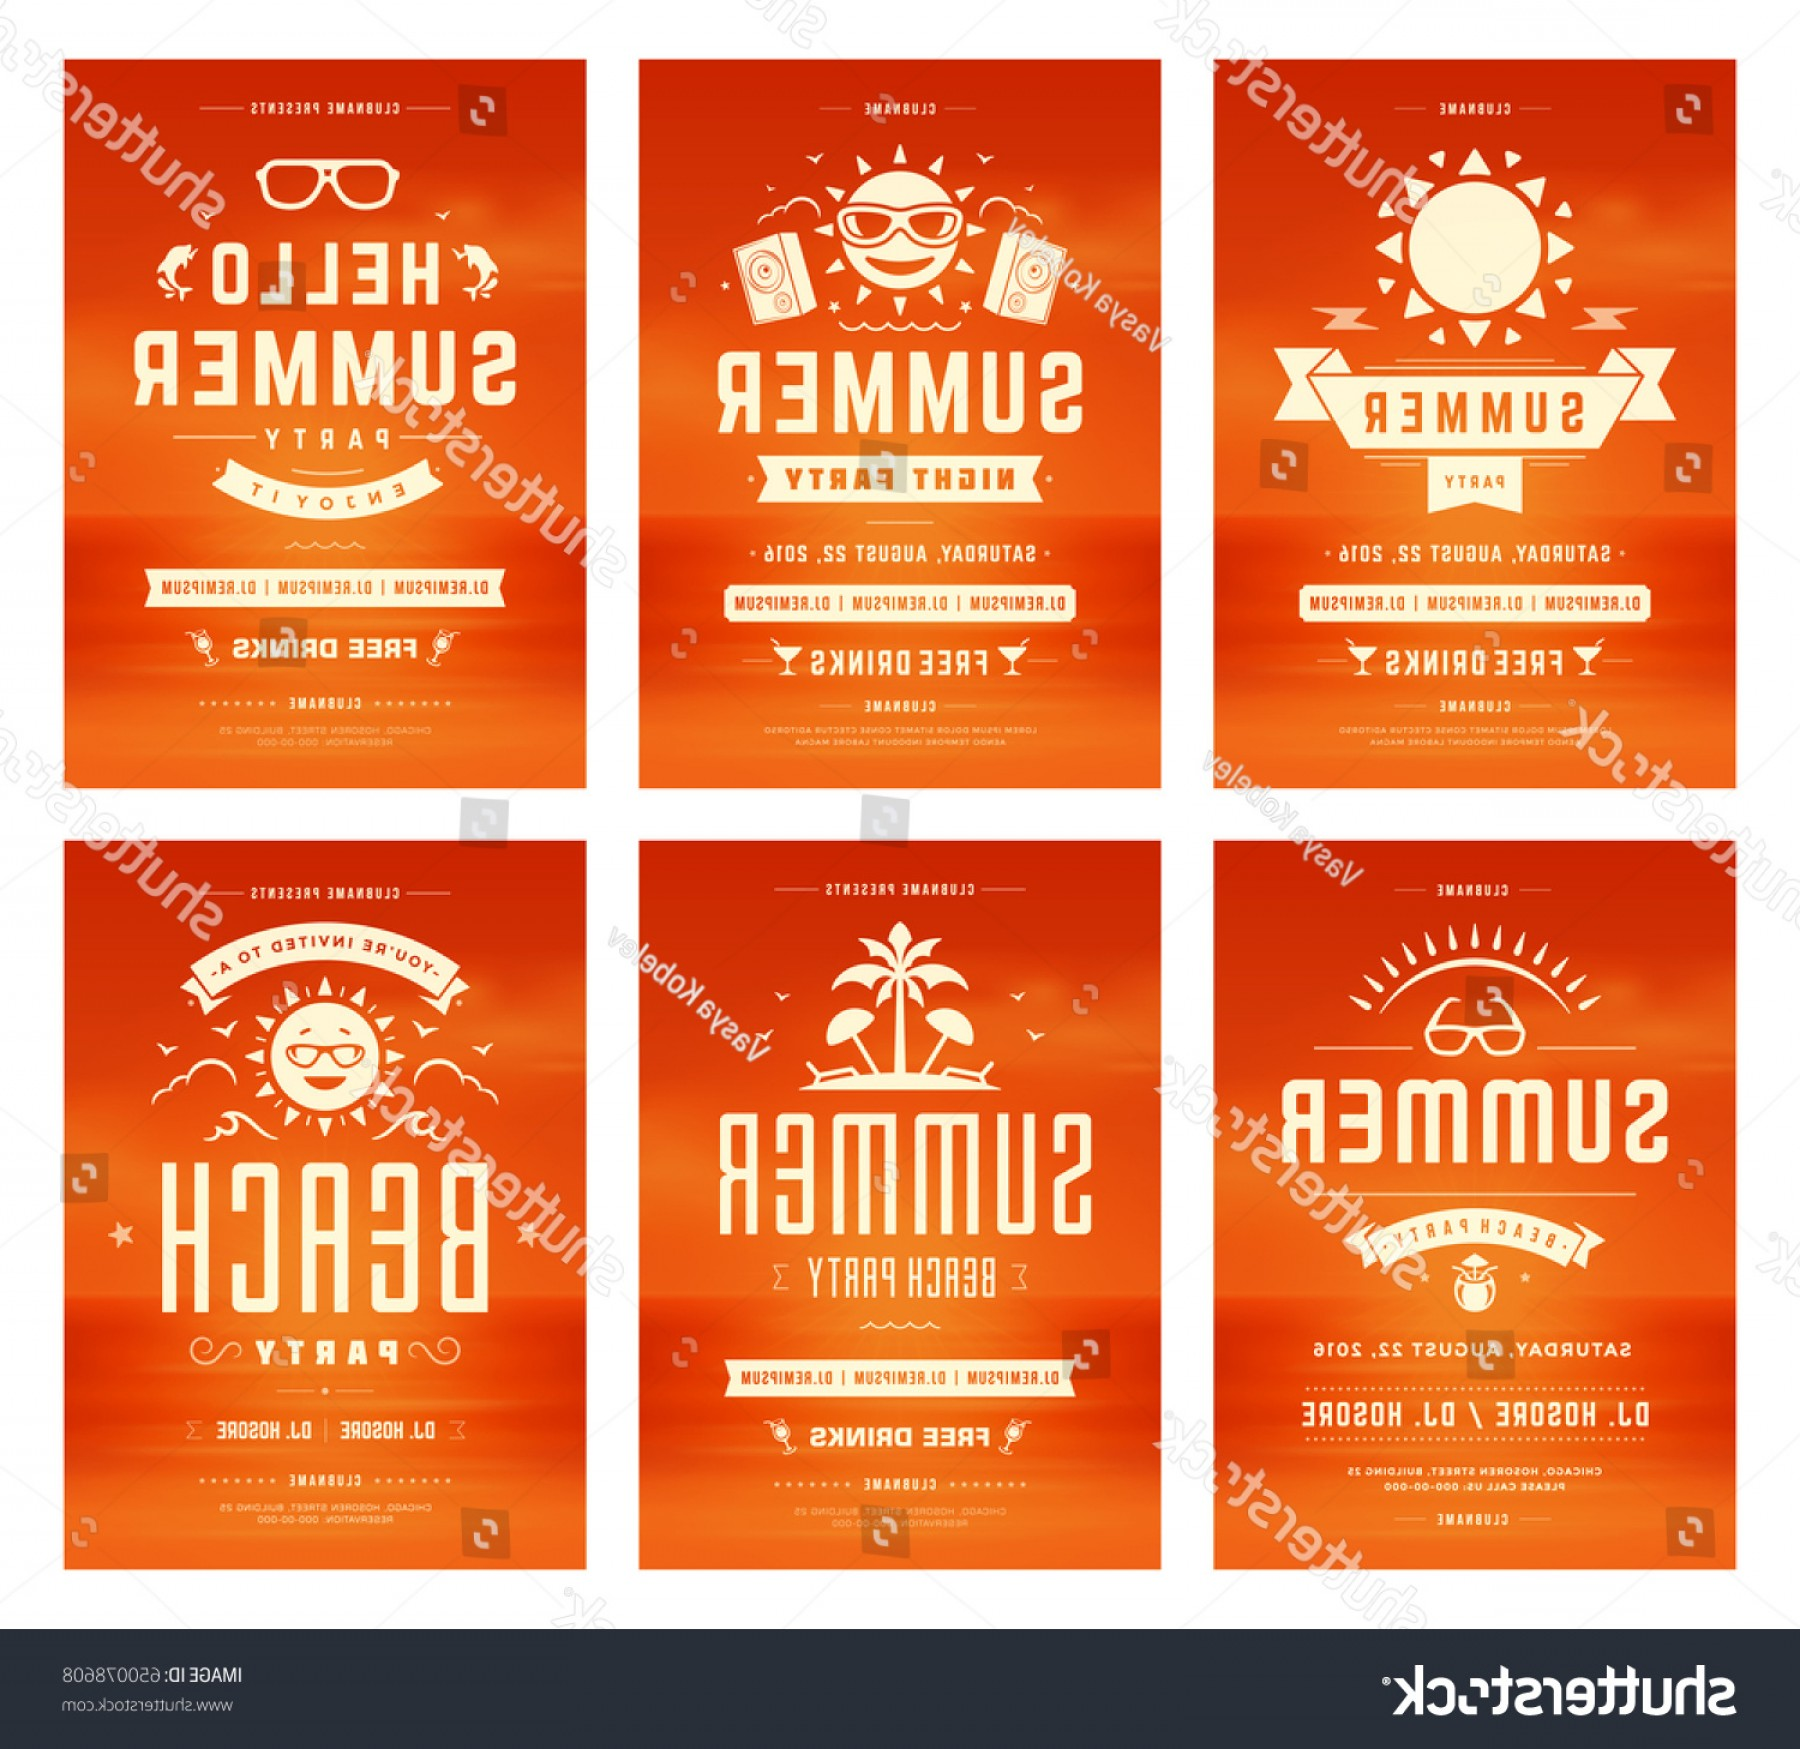 Vector Posters Design: Retro Summer Party Design Posters Flyers